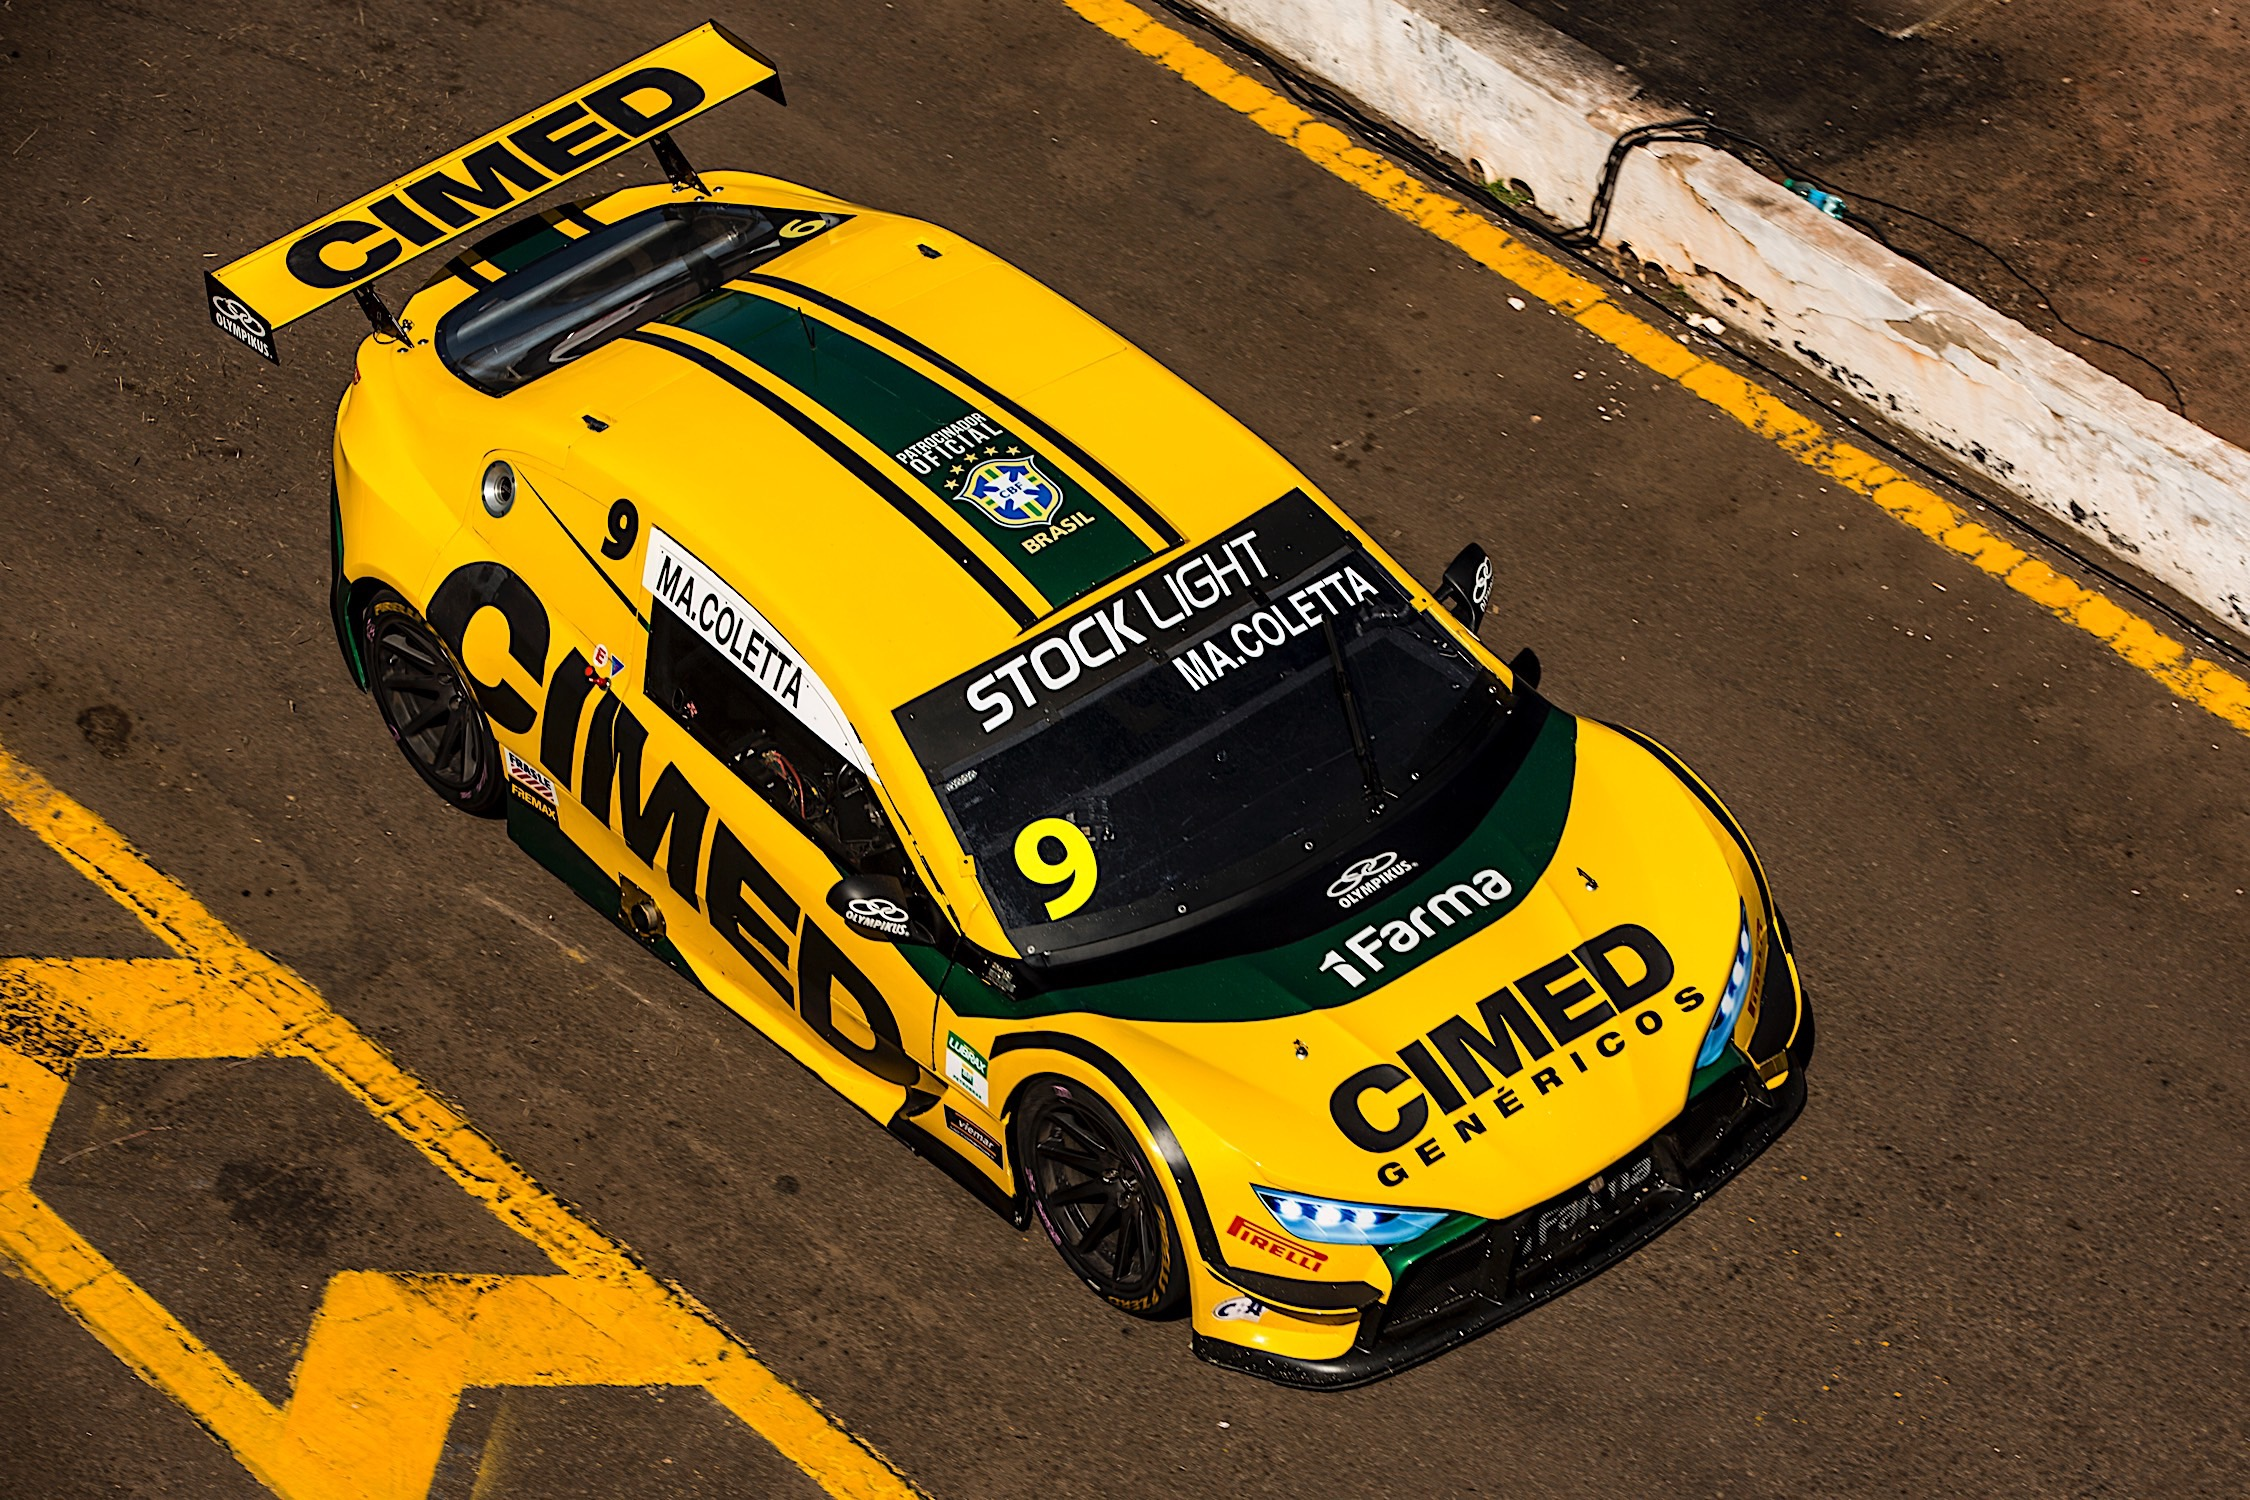 Photo of Stock Light – Marcel Coletta domina treinos livres em Campo Grande com a Cimed Racing